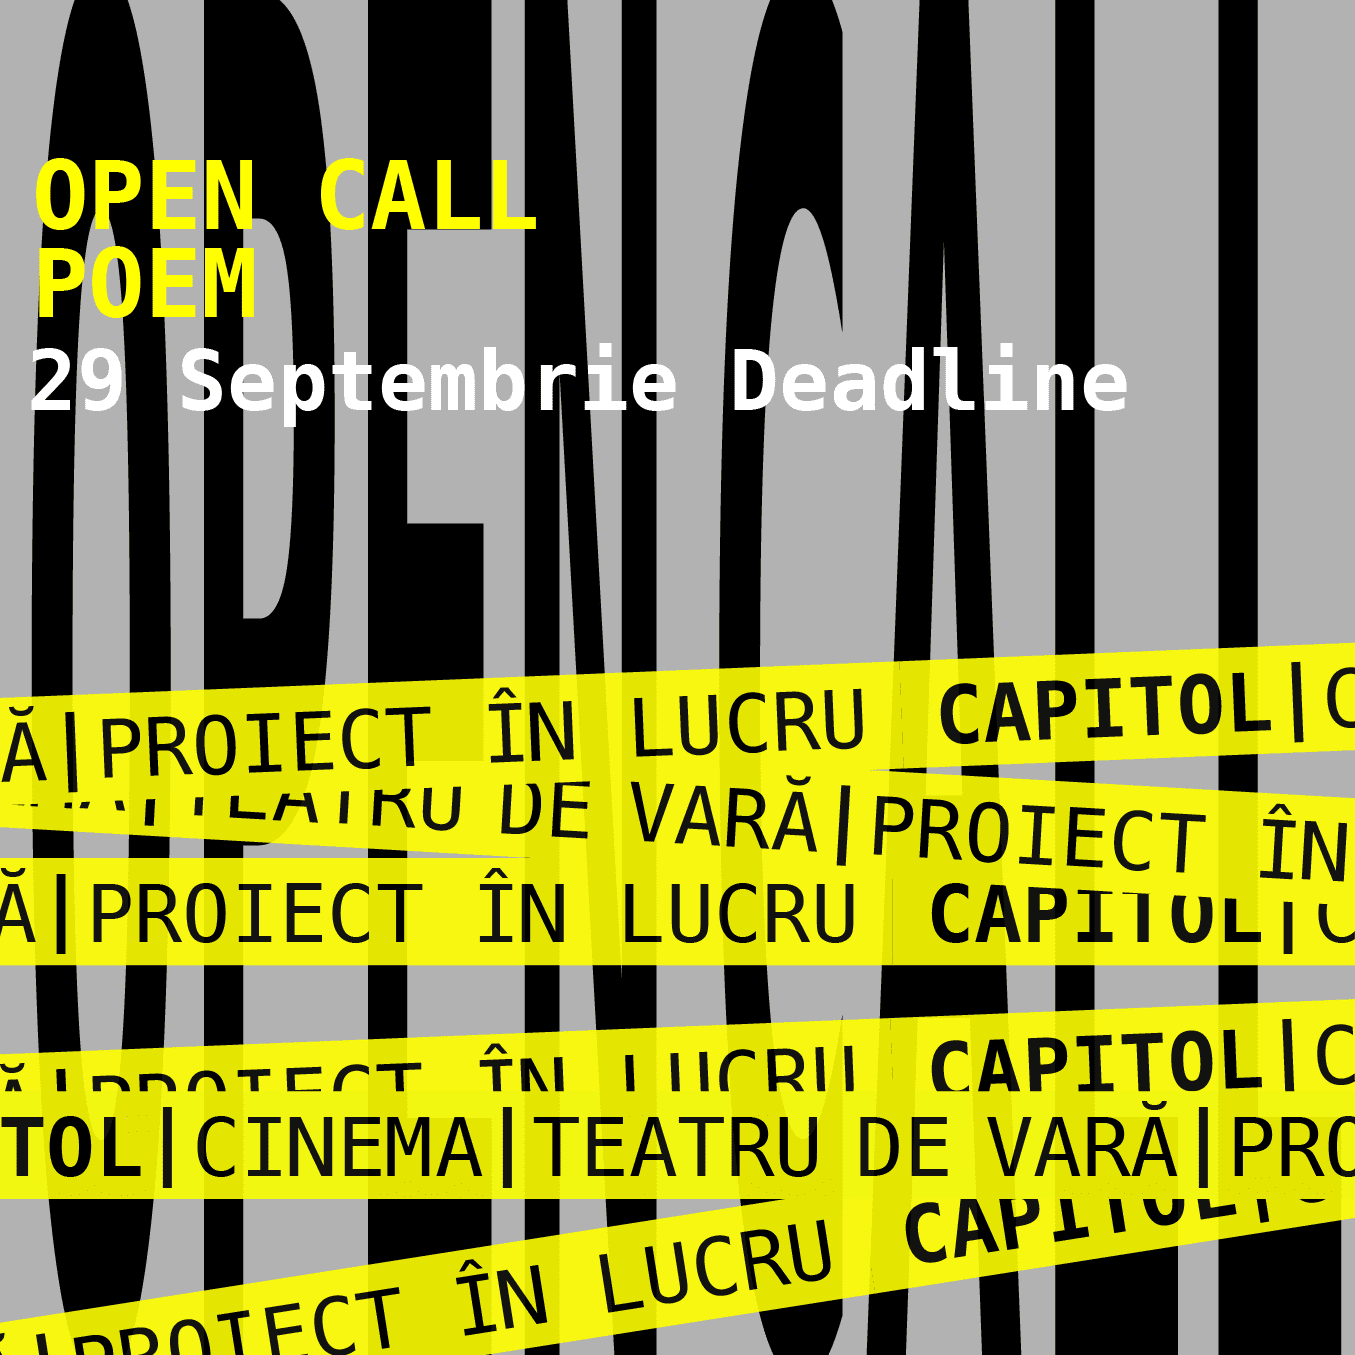 Cinema / Teatrul de vara Capitol open call III poem